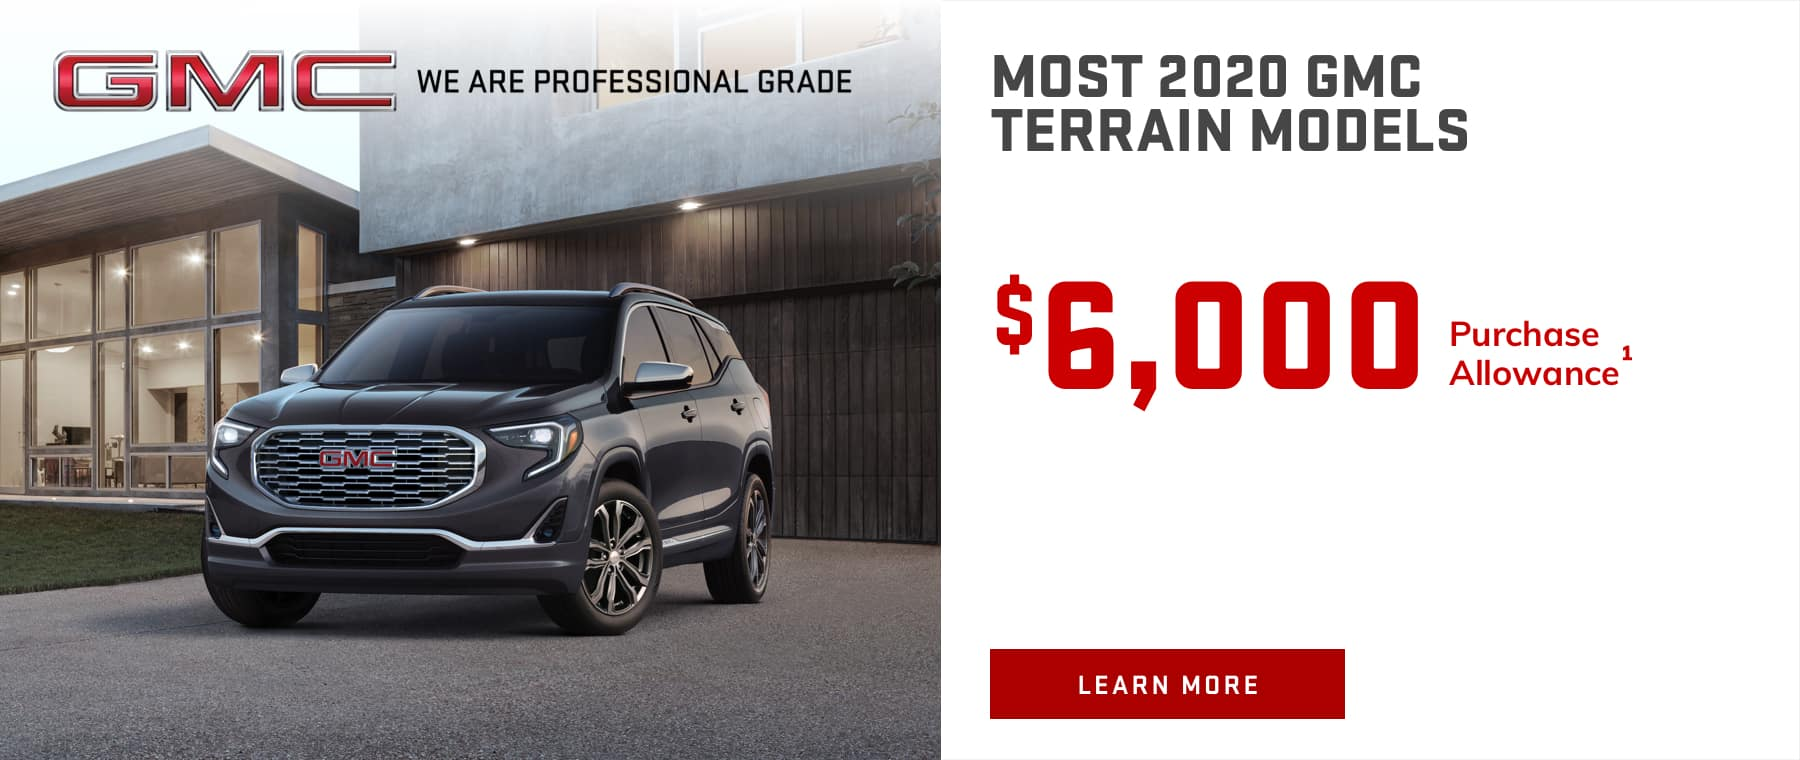 MOST 2020 GMC TERRAIN MODELS - $6,050 Purchase Allowance